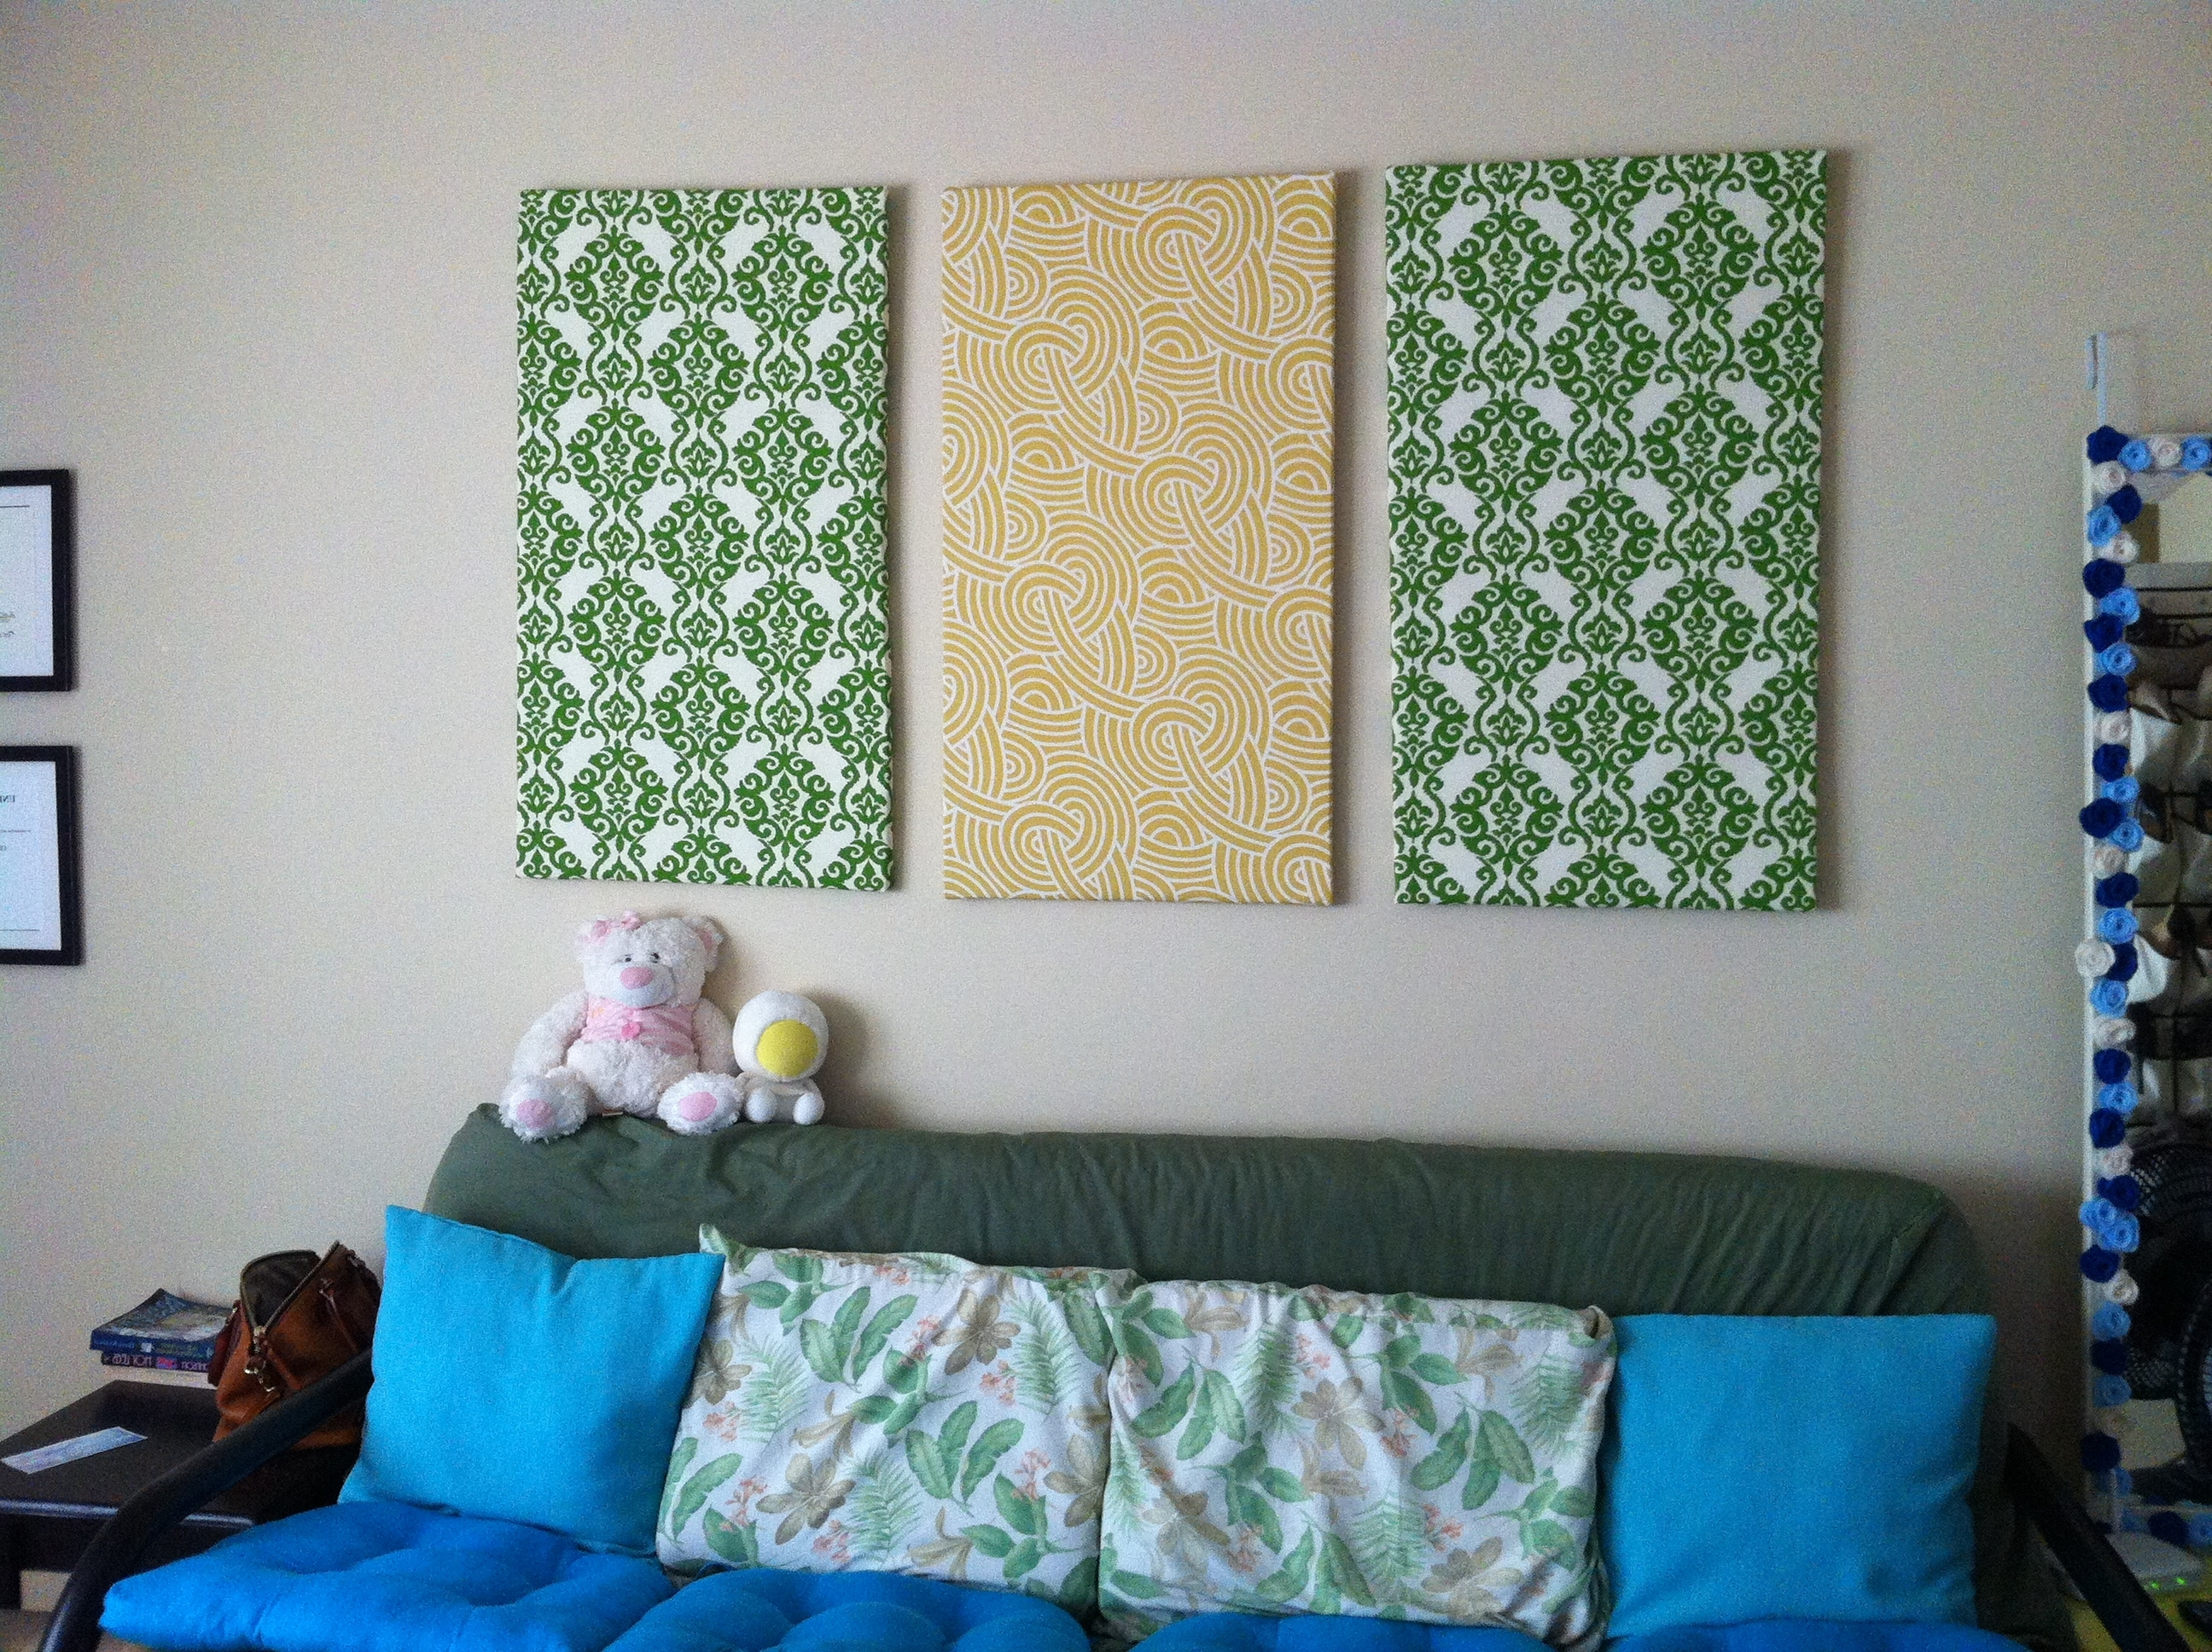 Art: Diy Fabric Wall Art In Most Popular Canvas Wall Art With Fabric (View 1 of 15)